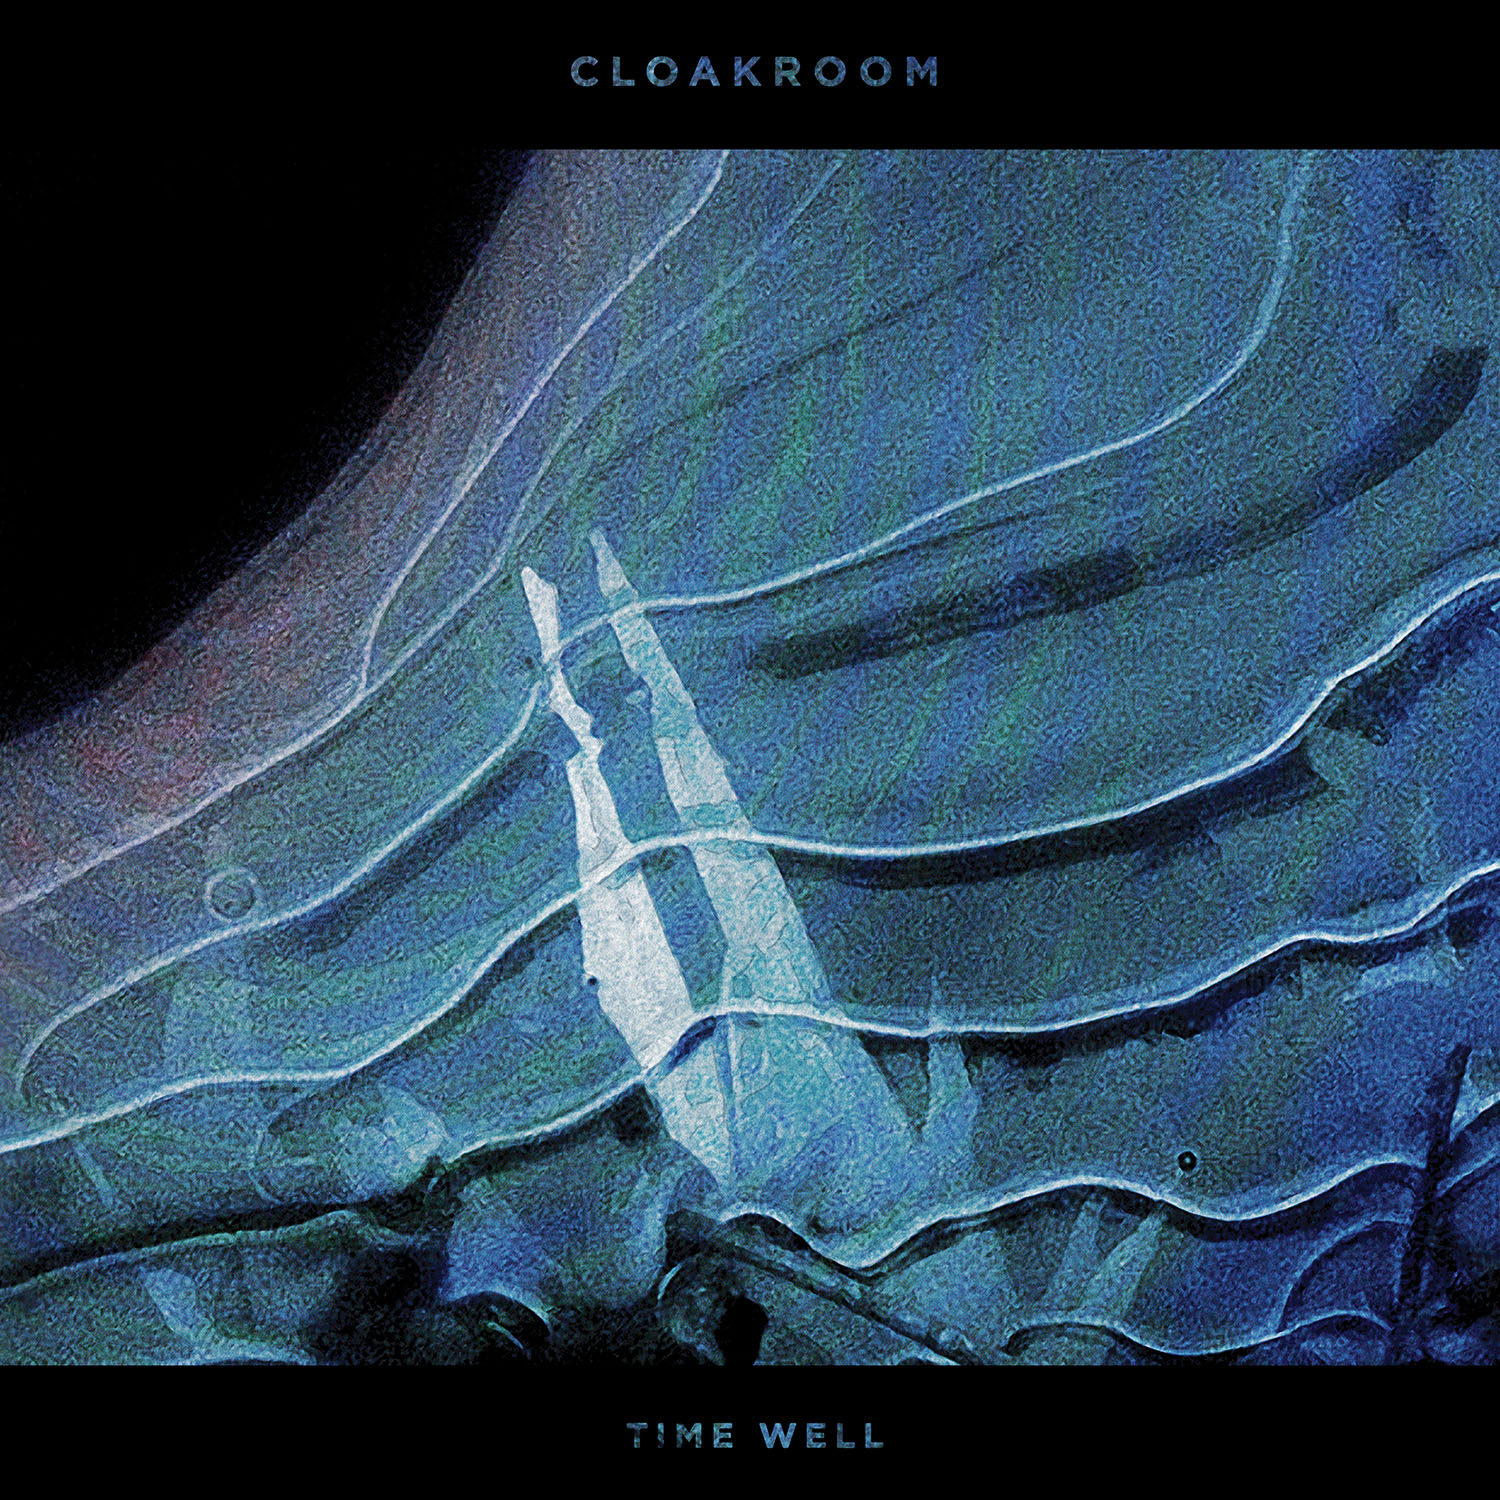 CLOAKROOM Time Well - Vinyl 2xLP (black)